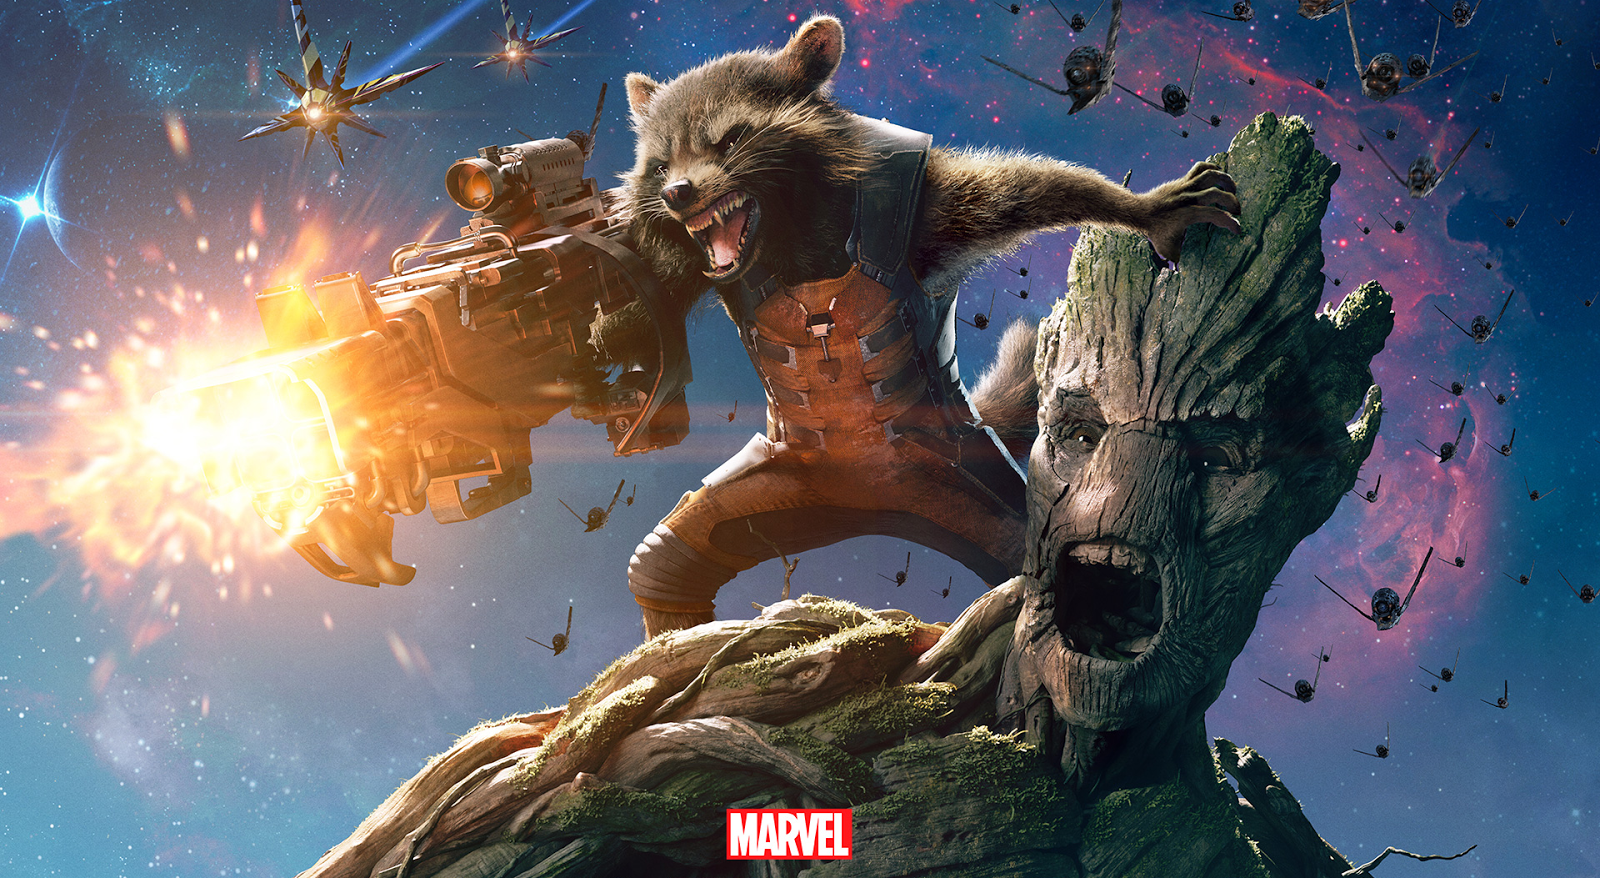 Guardian Of The Galaxy Wallpaper: Guardians Of The Galaxy